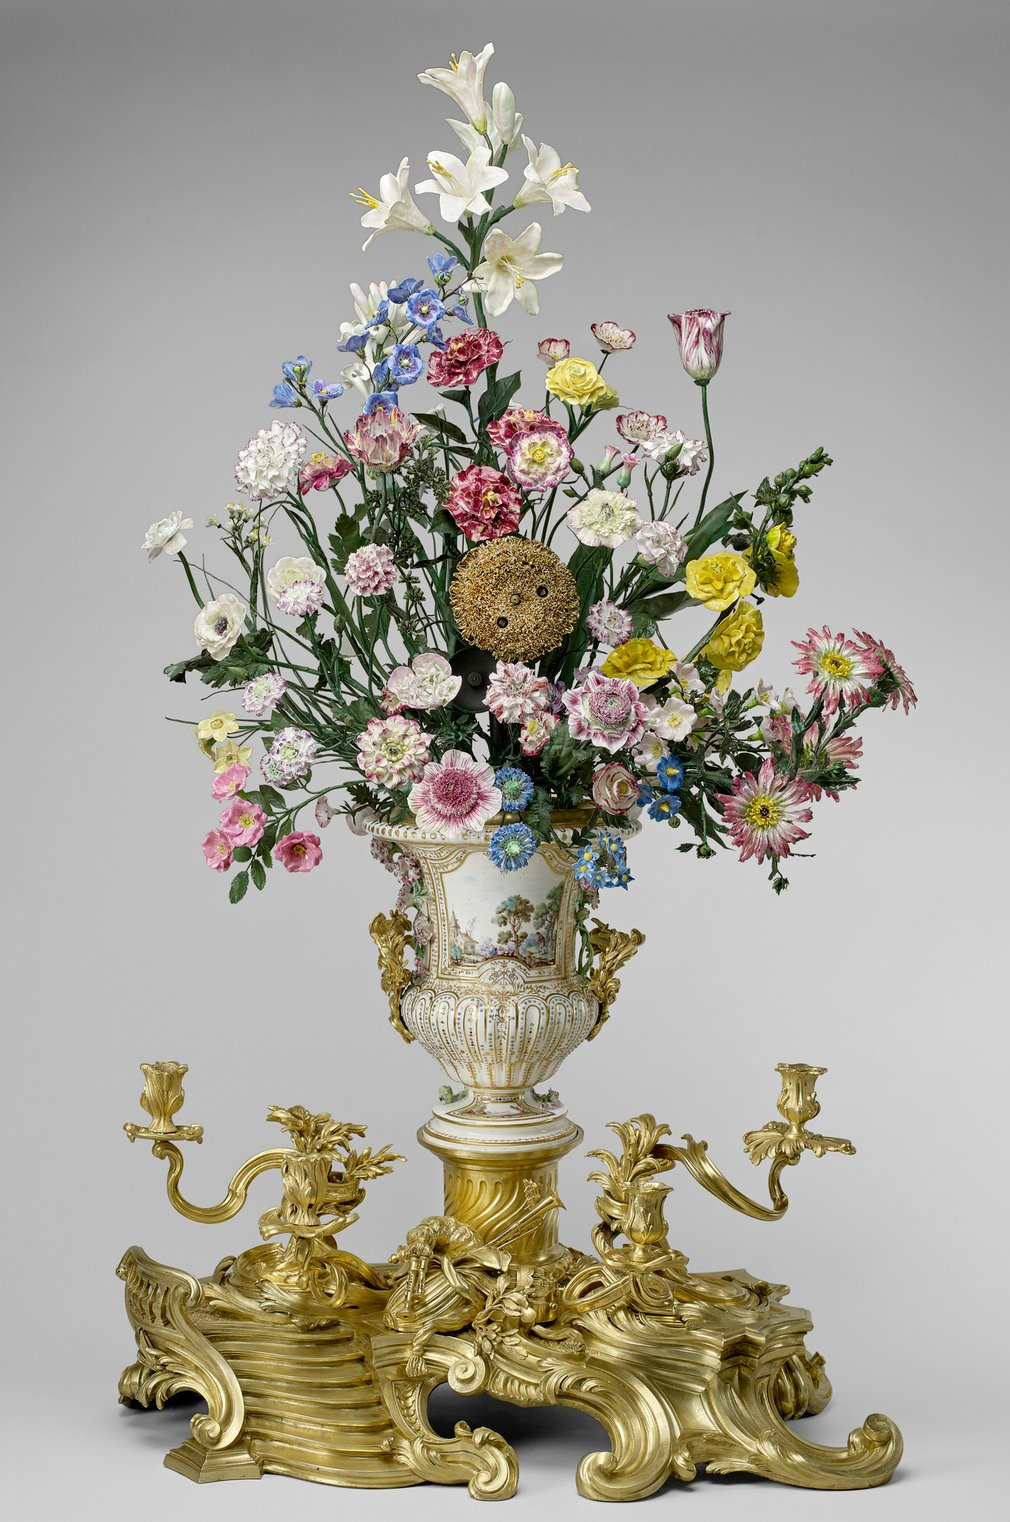 A gilt bronze clock in the form of a sunflower, mounted into the centre of a Vincennes porcelain urn shape vase containing a bouquet of flowers, also of Vincennes porcelain, on stems of green laquered brass wire. Arranged as a loose bouquet, the porcelai